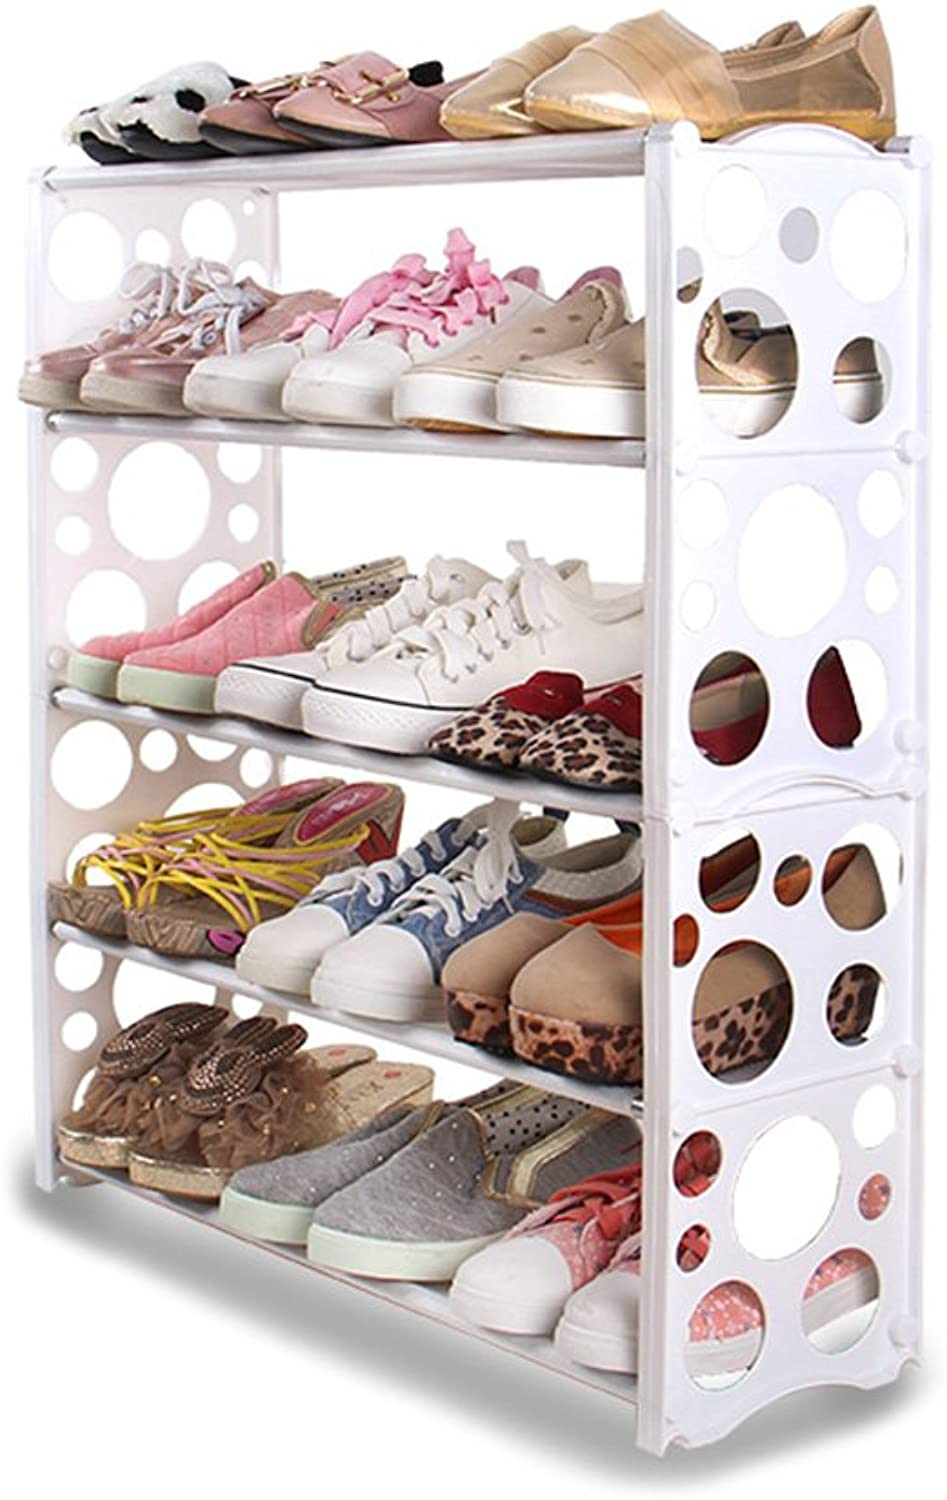 Plastic,5 Layers,Fresh and Fashionable, Easy to Install, Dustproof, Stable and Firm, Large Storage Space, 3 colors, 2 Styles, Simple and Creative Plastic shoes Cabinet.